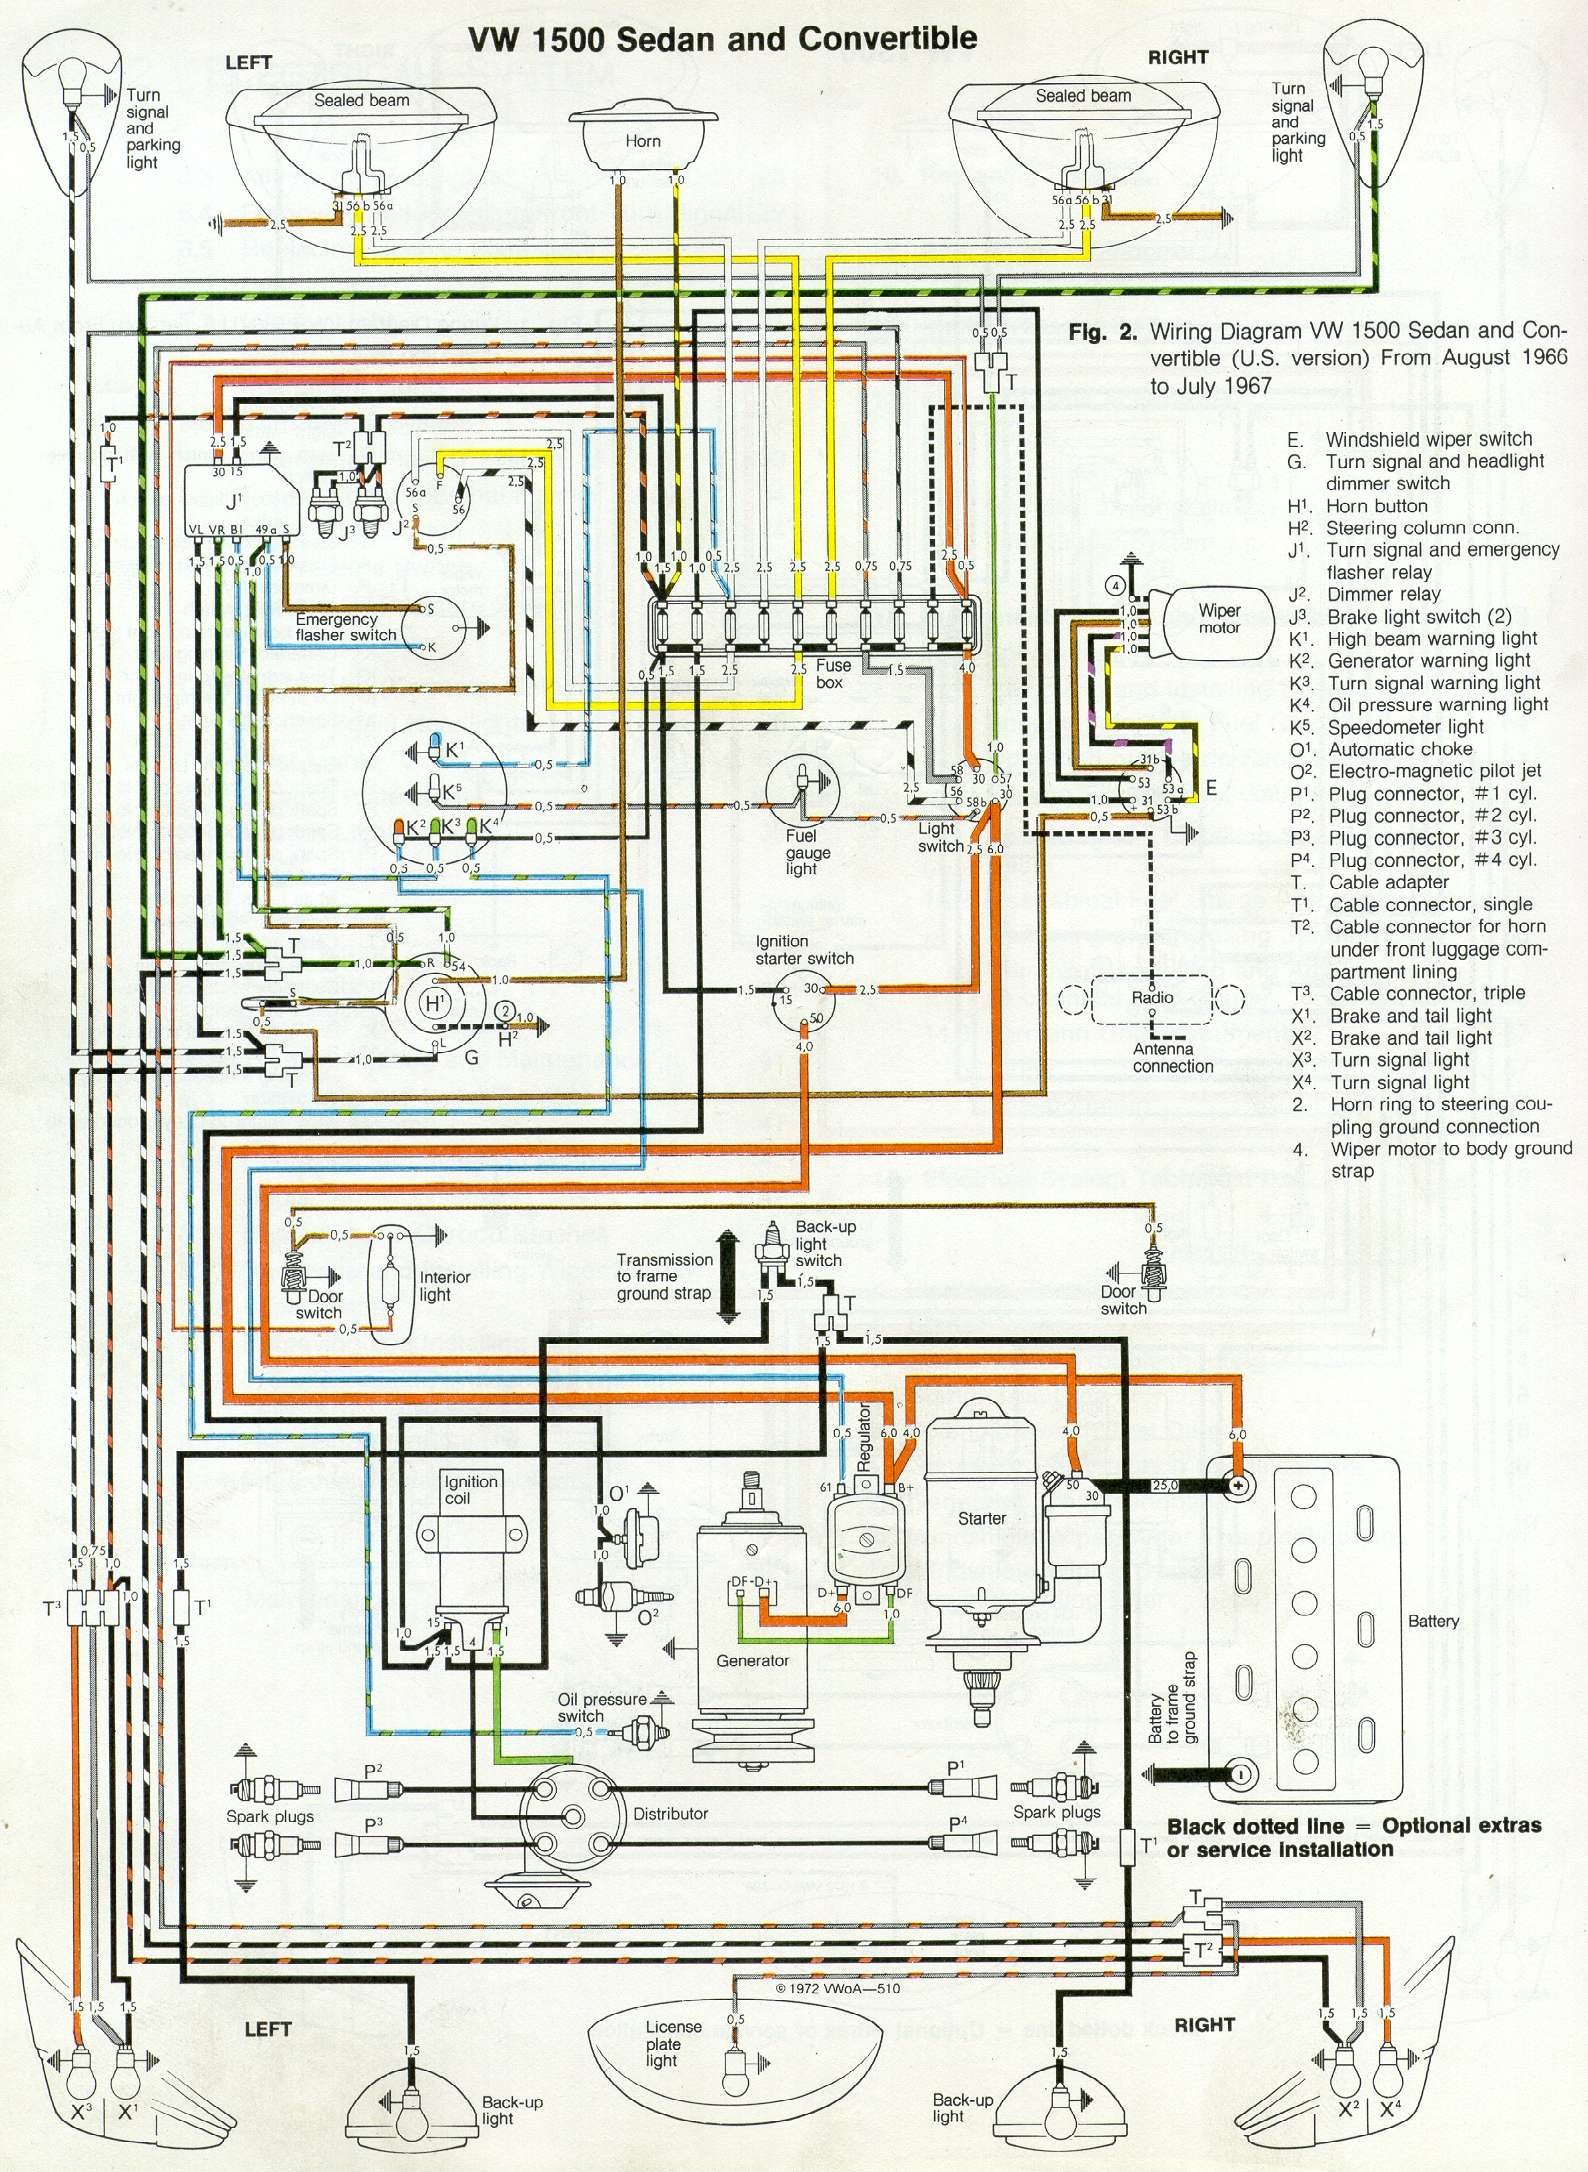 VW bug_1967 other diagrams vw beach buggy wiring diagram at gsmx.co